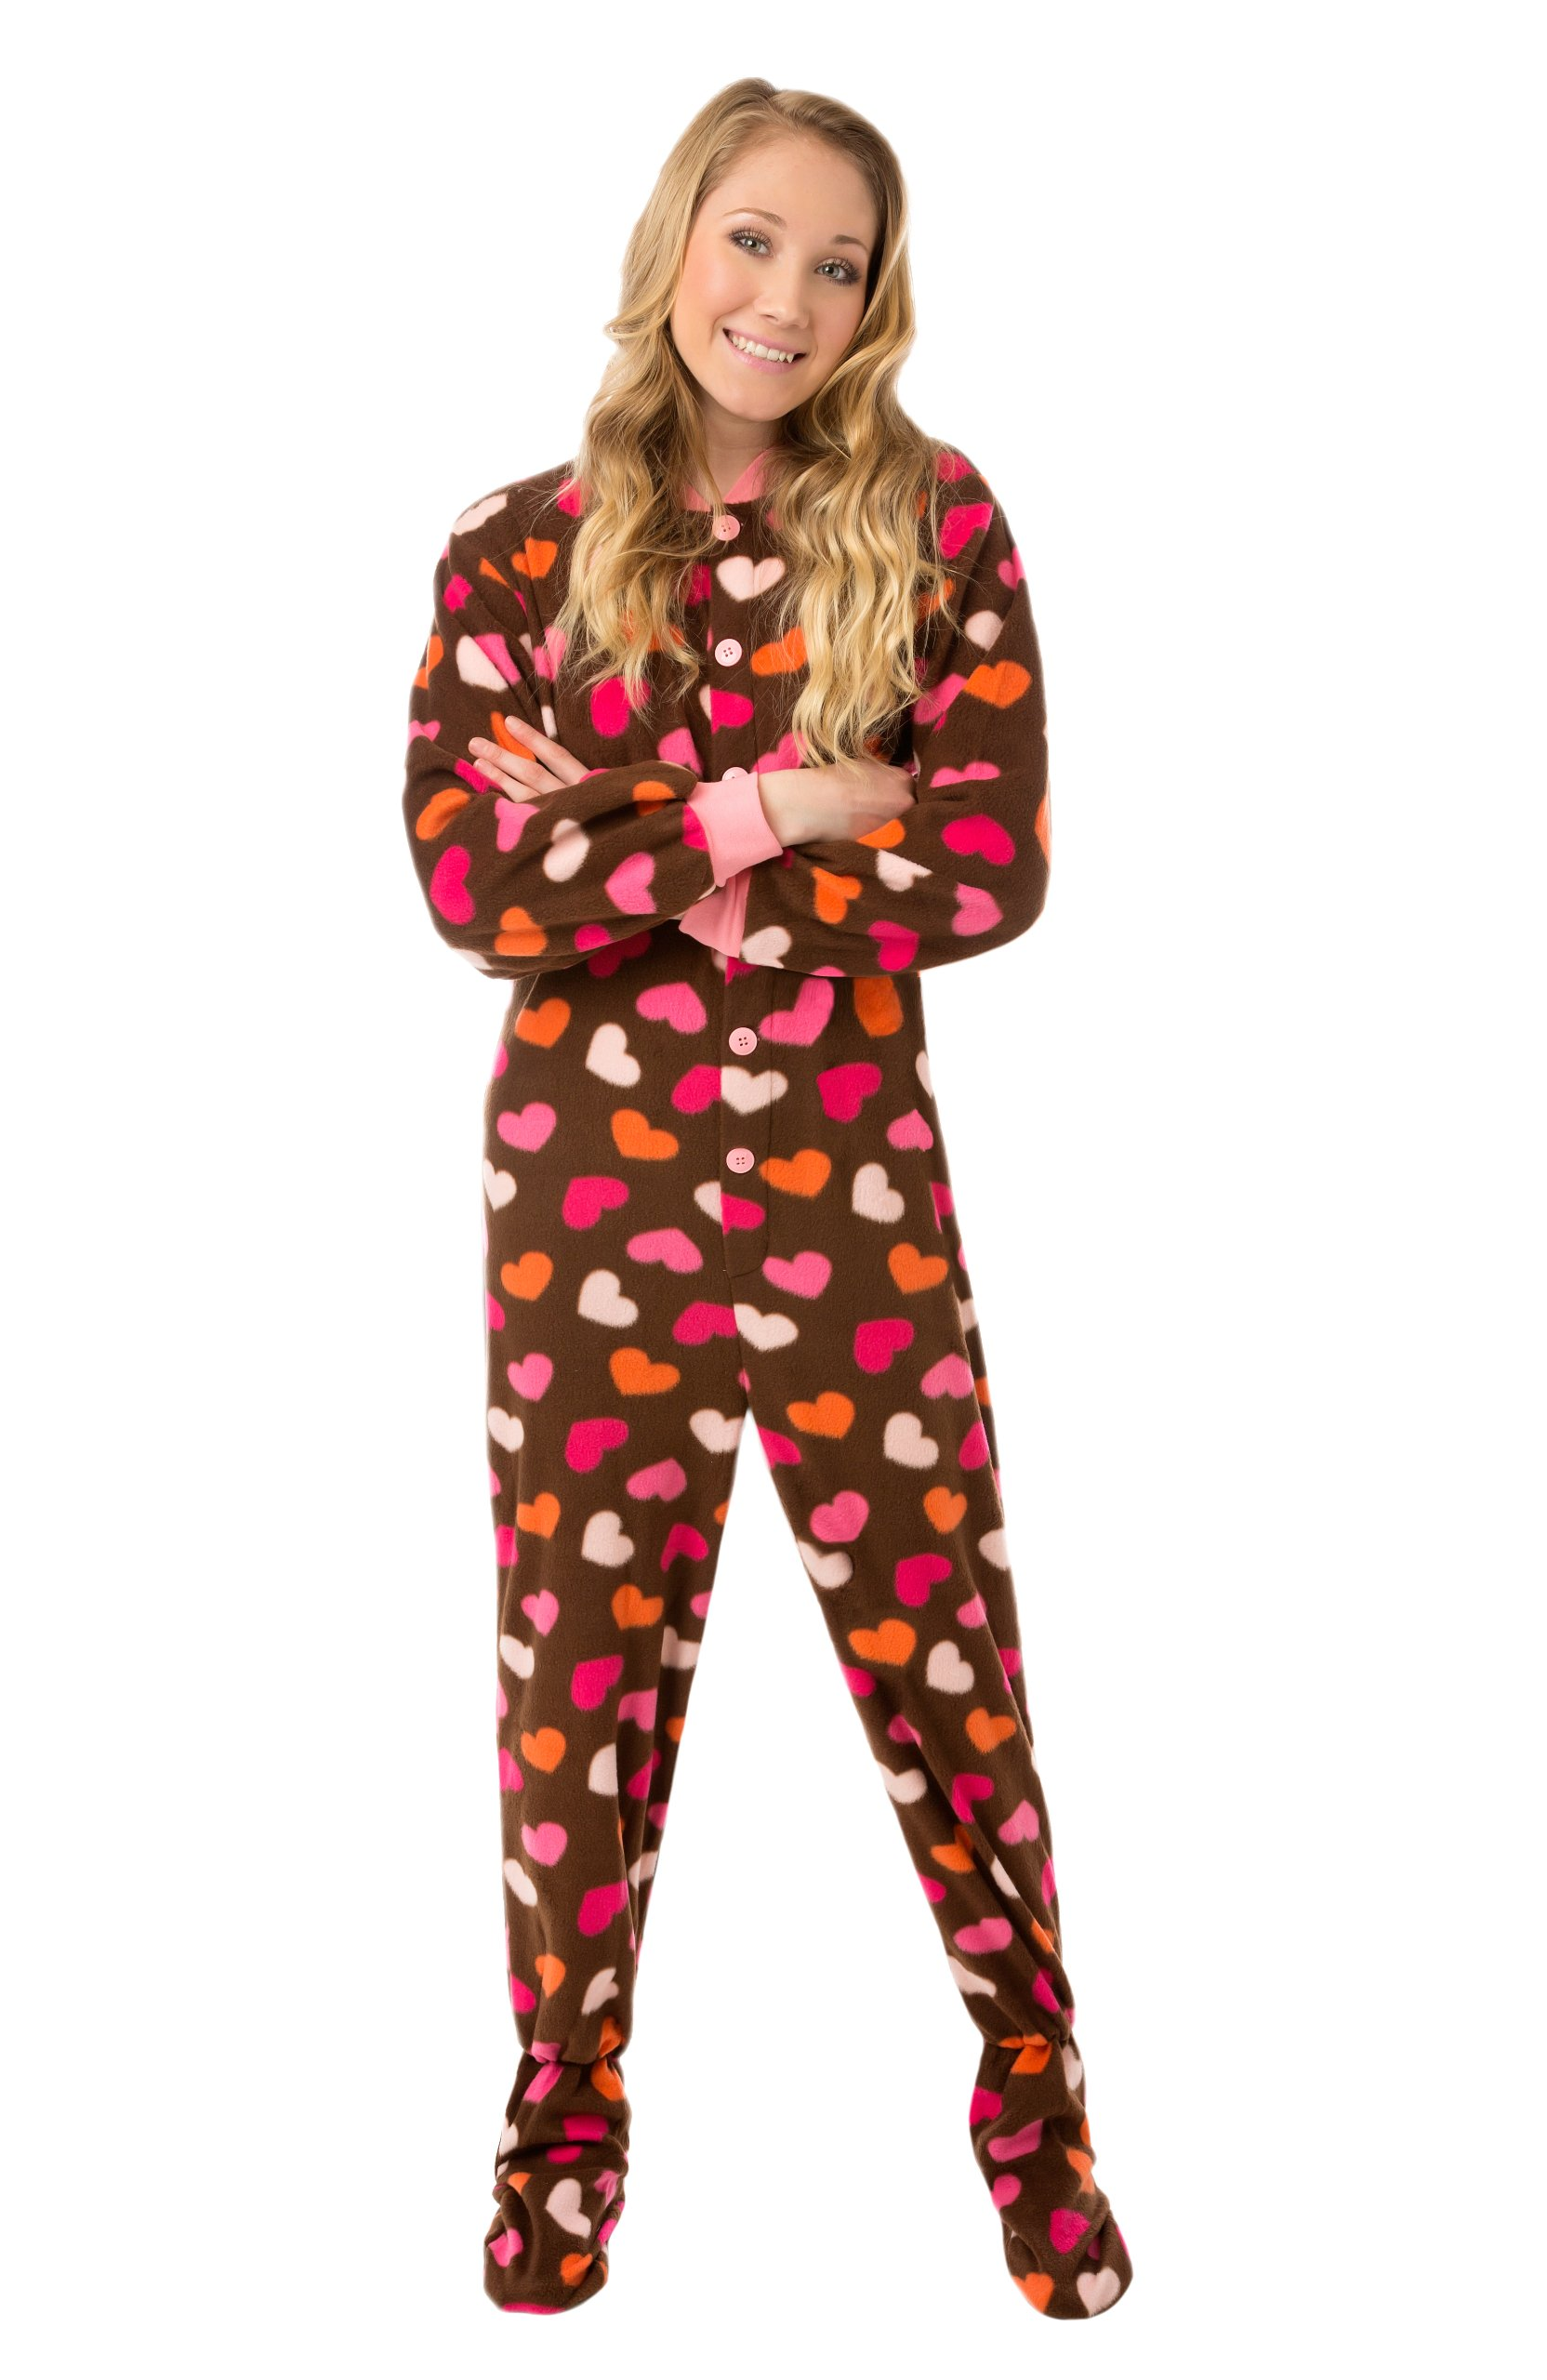 Brown Fleece Pink Hearts Womens Footed Pajamas Onesie with Drop seat